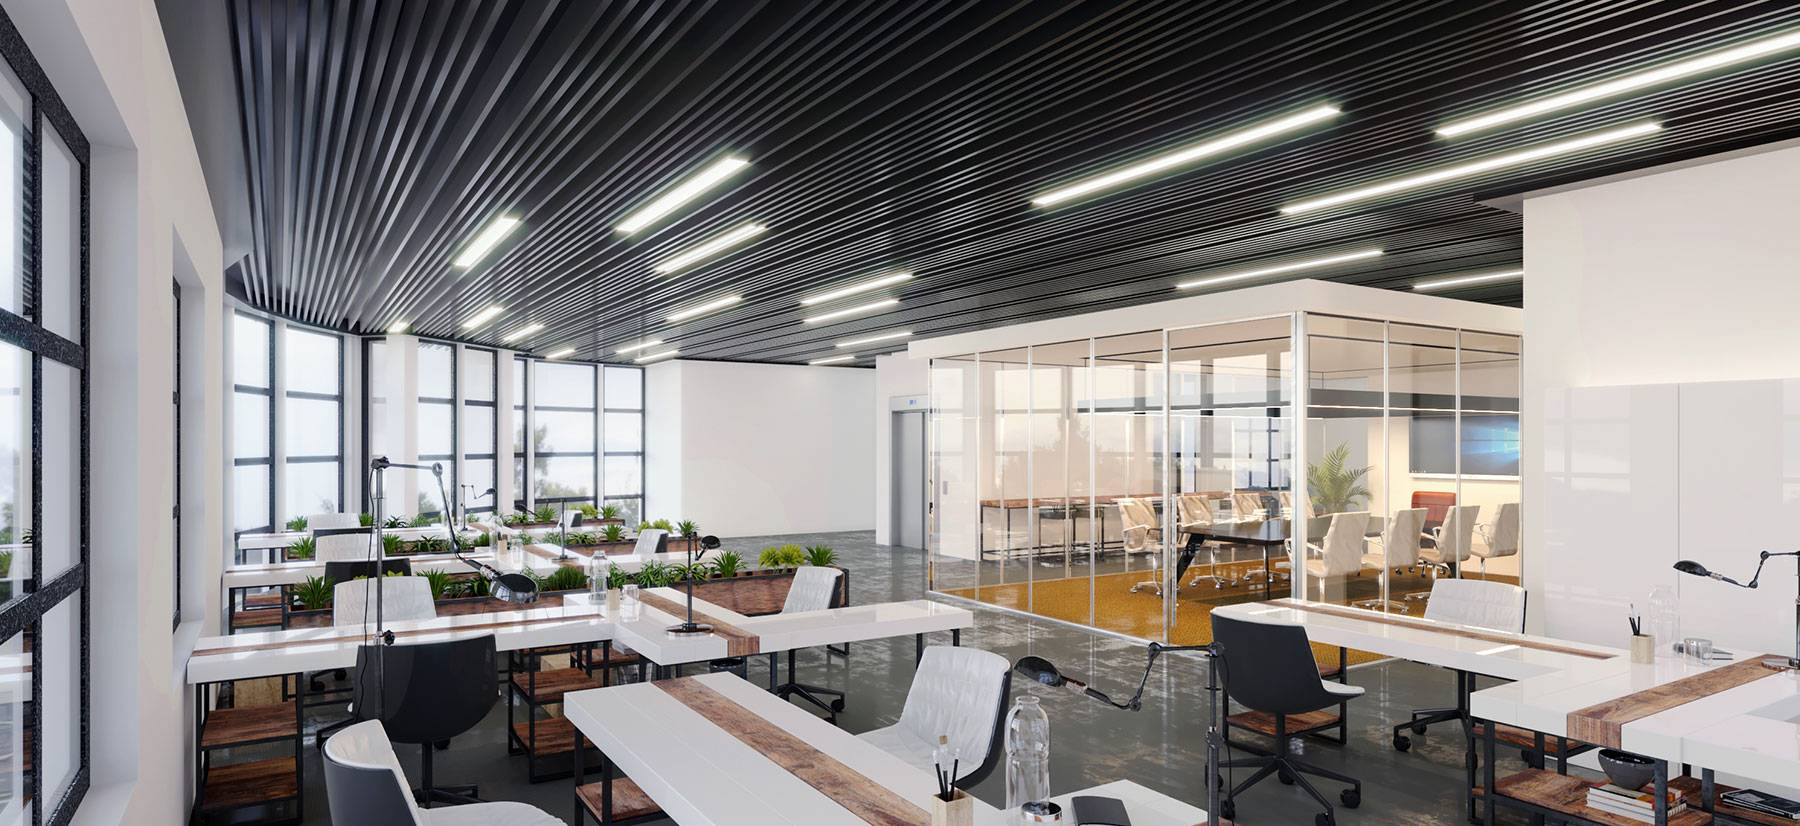 sample office project by the City government